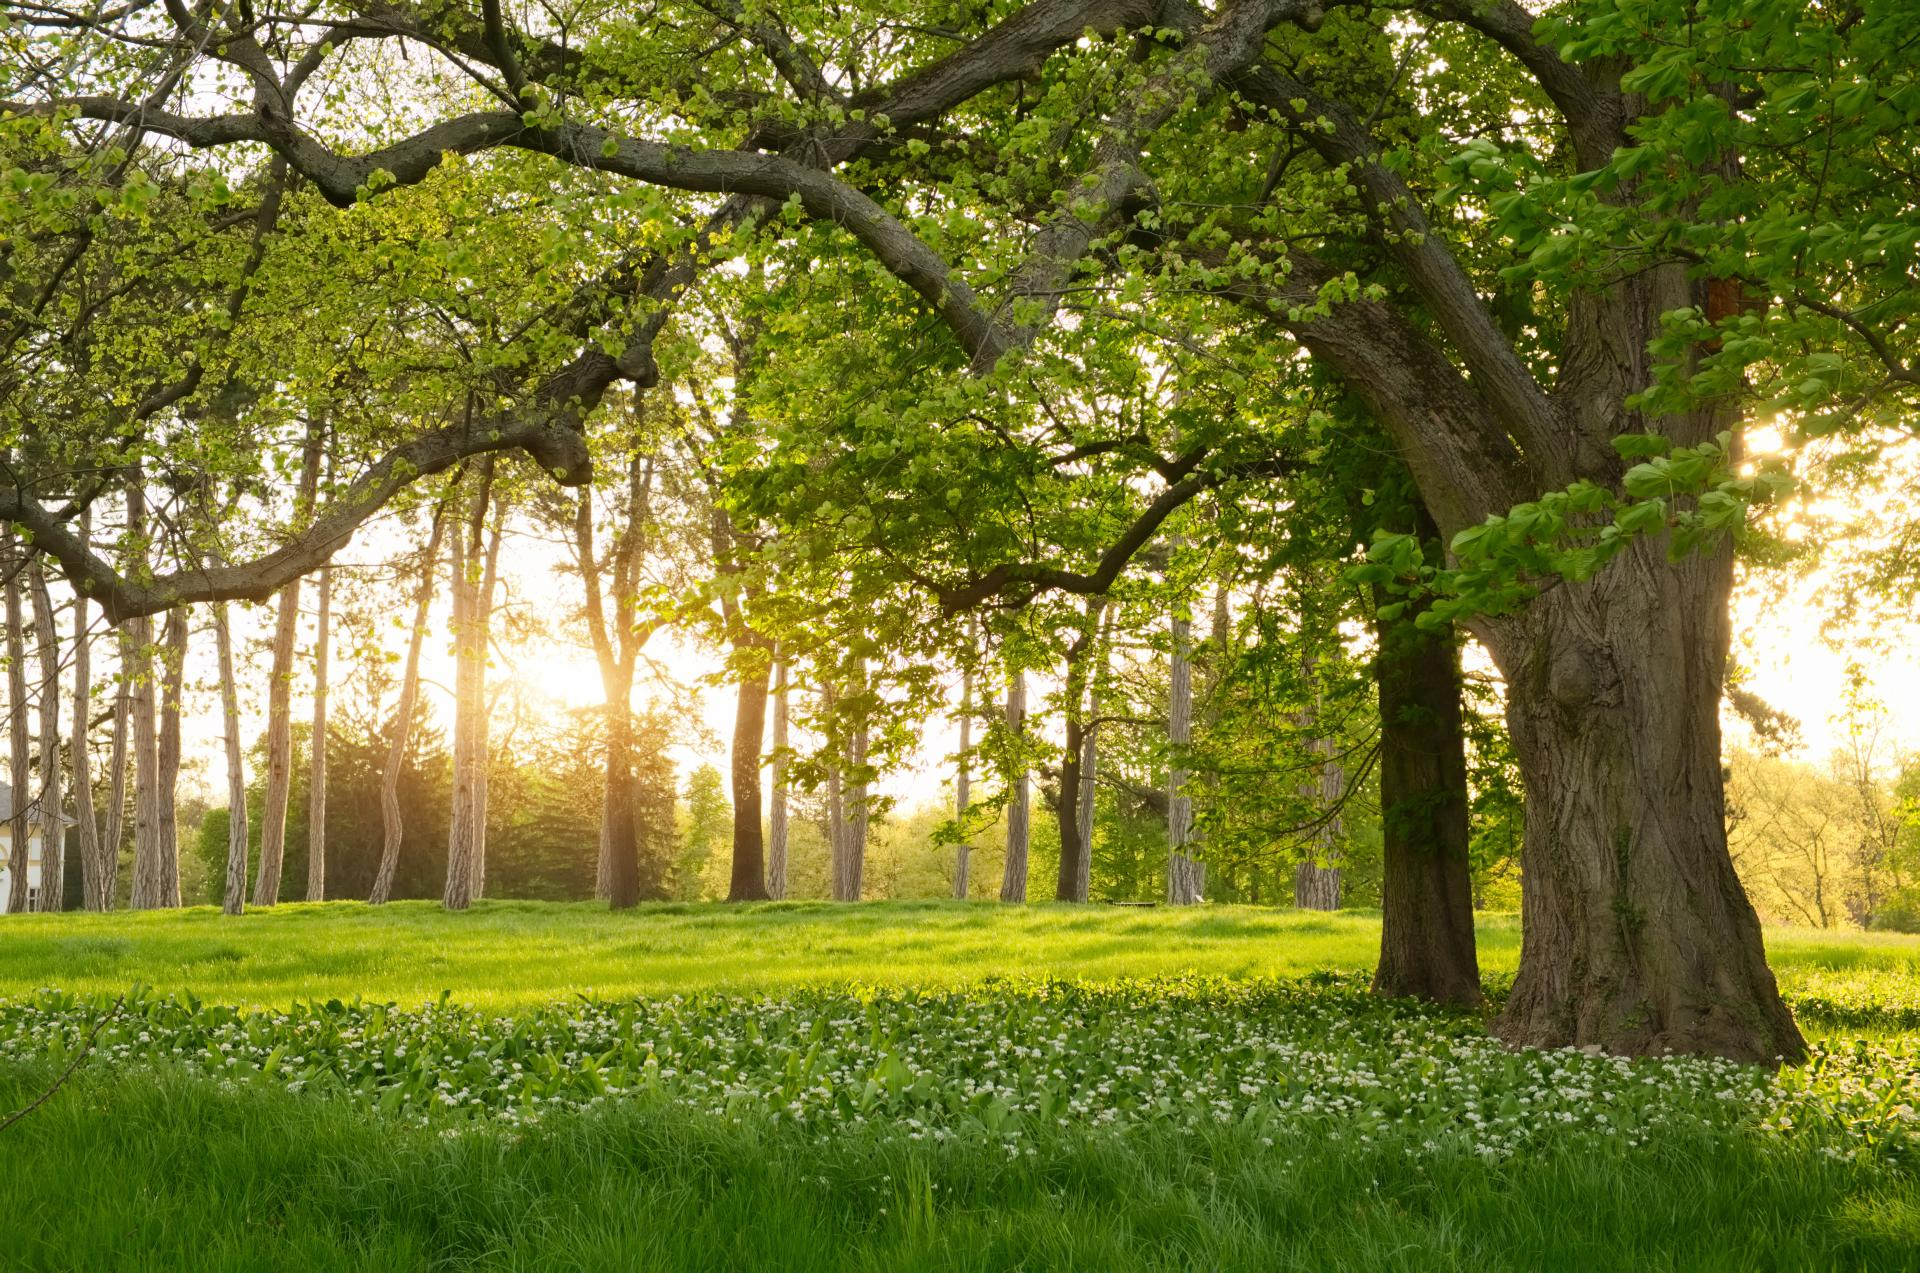 Fotolia 82116361 - Sunlight in the green forest springtime © Creaturart